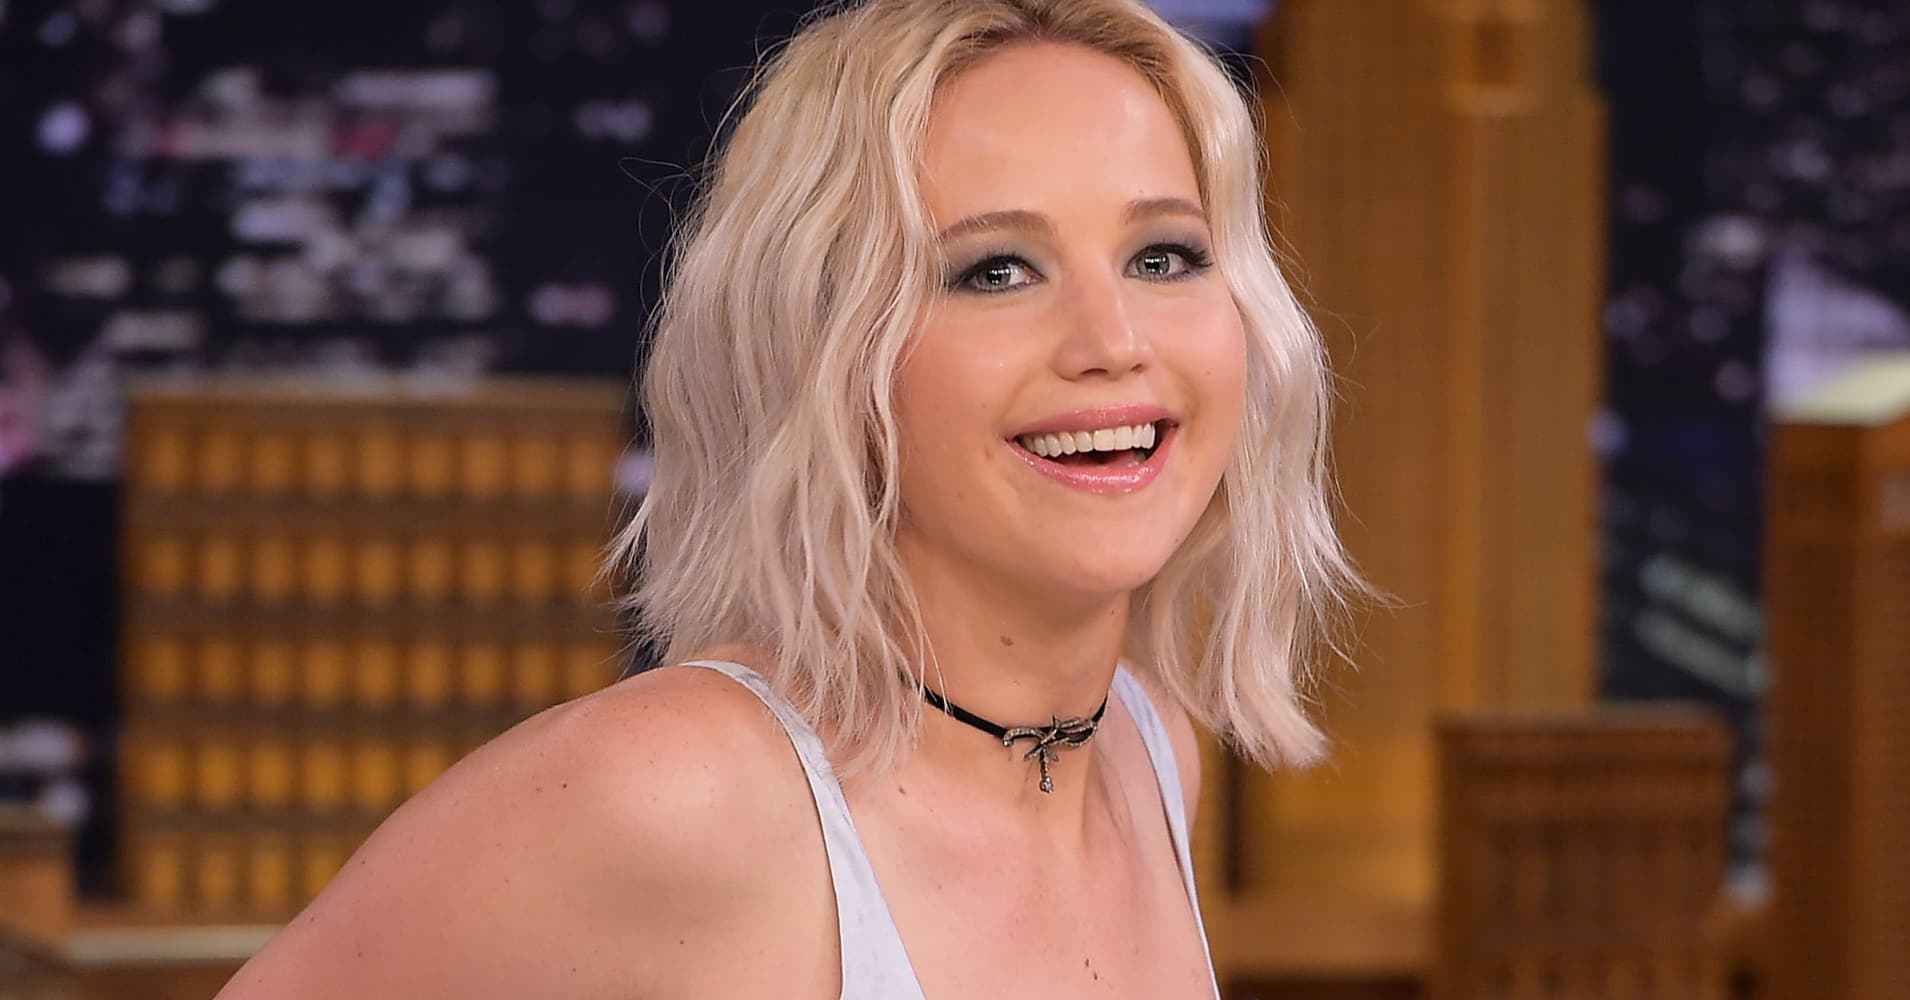 Jennifer Lawrence On The Job Shed Have If She Wasnt Acting-3970